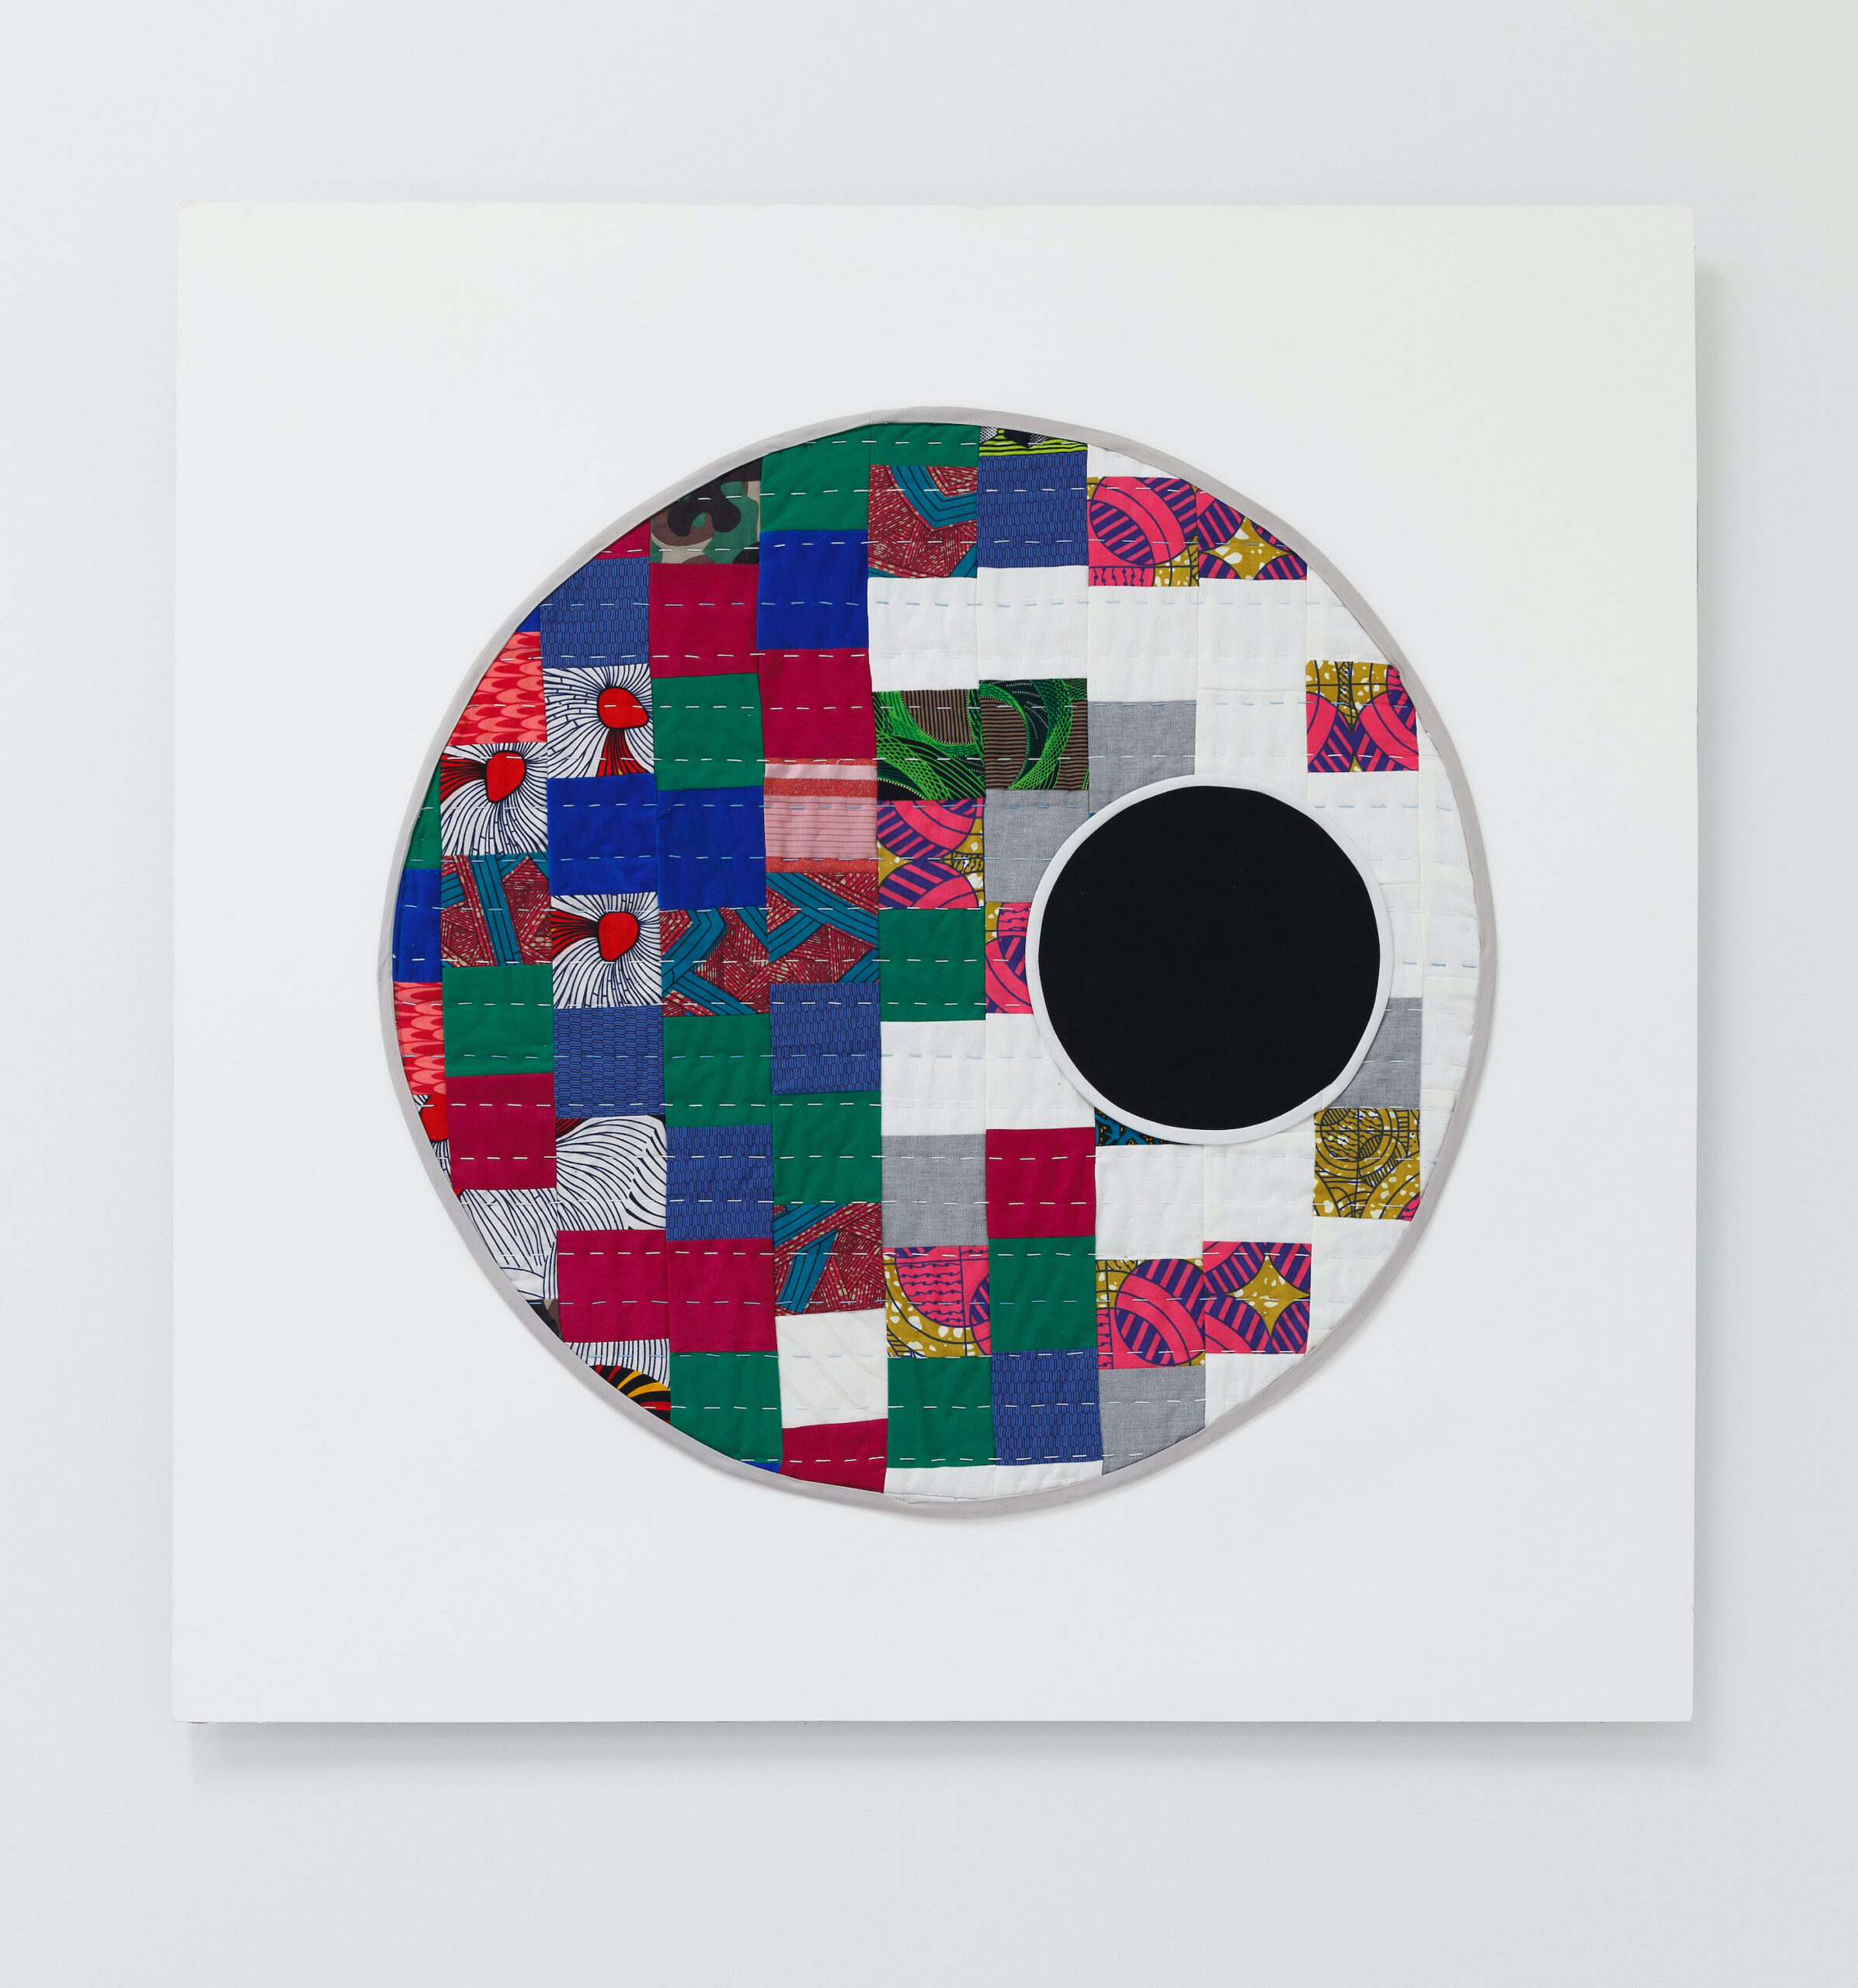 Adia Millet, Black Moon, 2020, Cotton, upholstery, fabric and silk, 30.5 x 30.5 inches, Emerson Dorsch, Miami FL